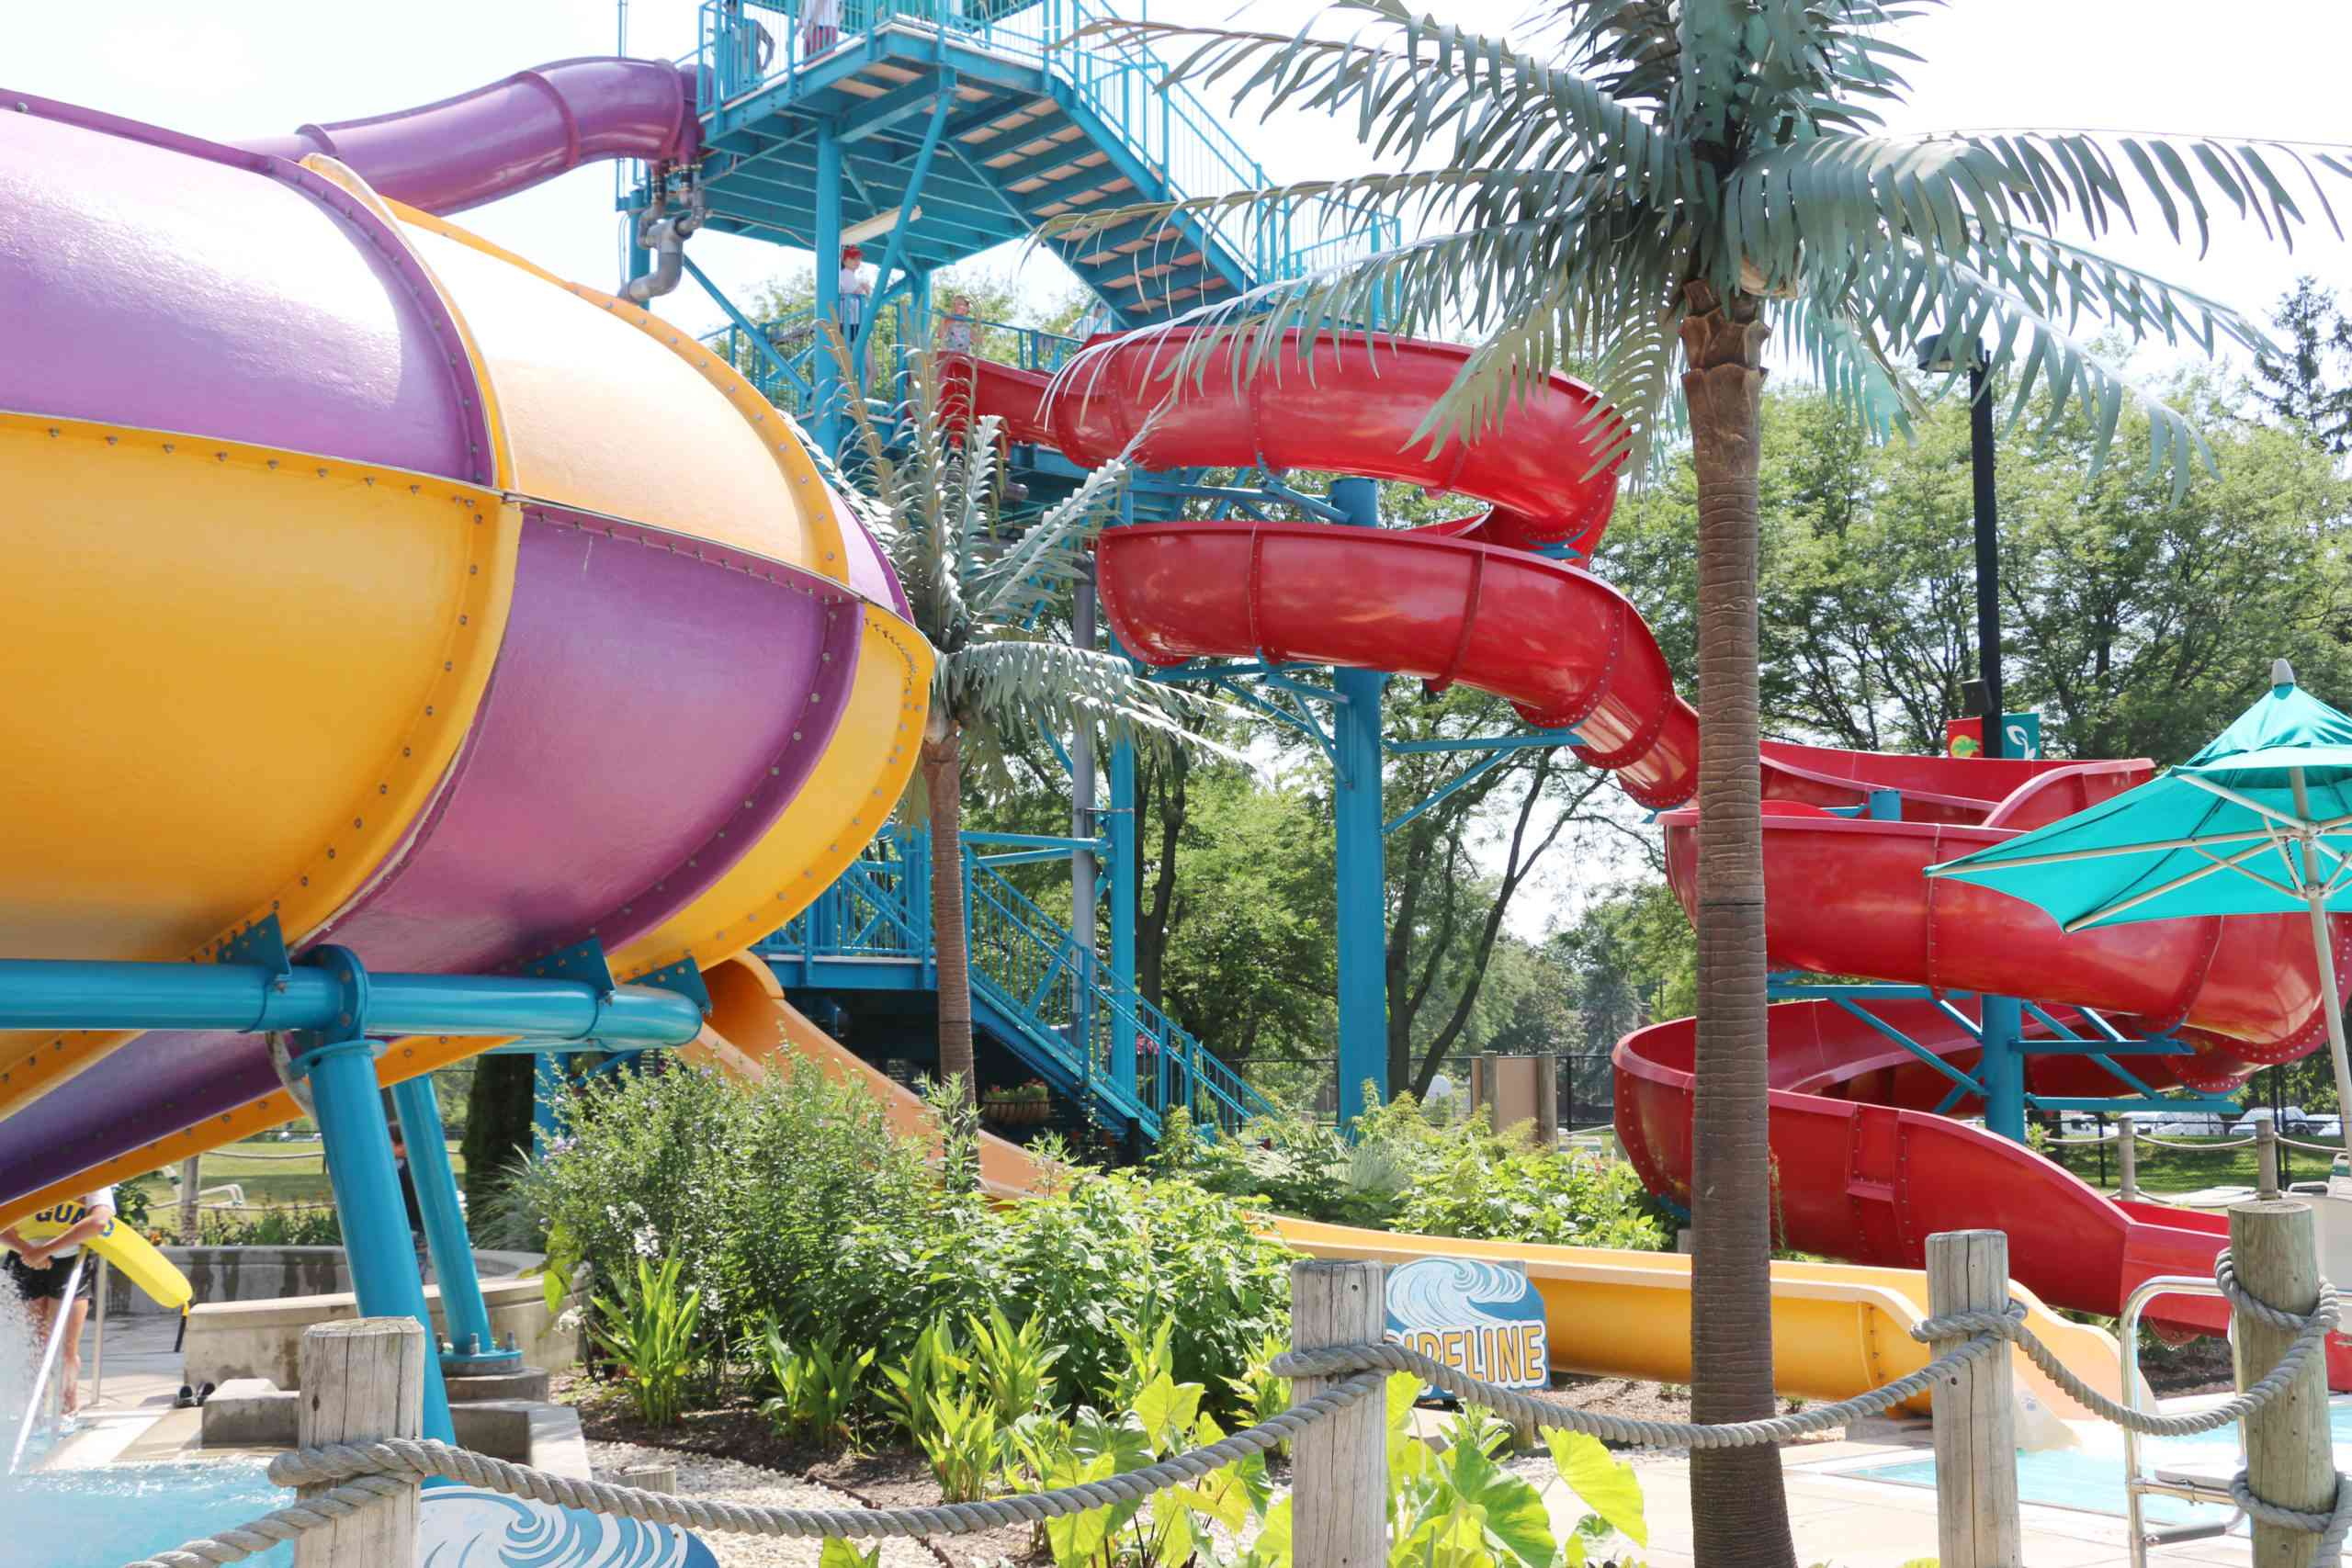 Paradise Bay Water Park in Illinois